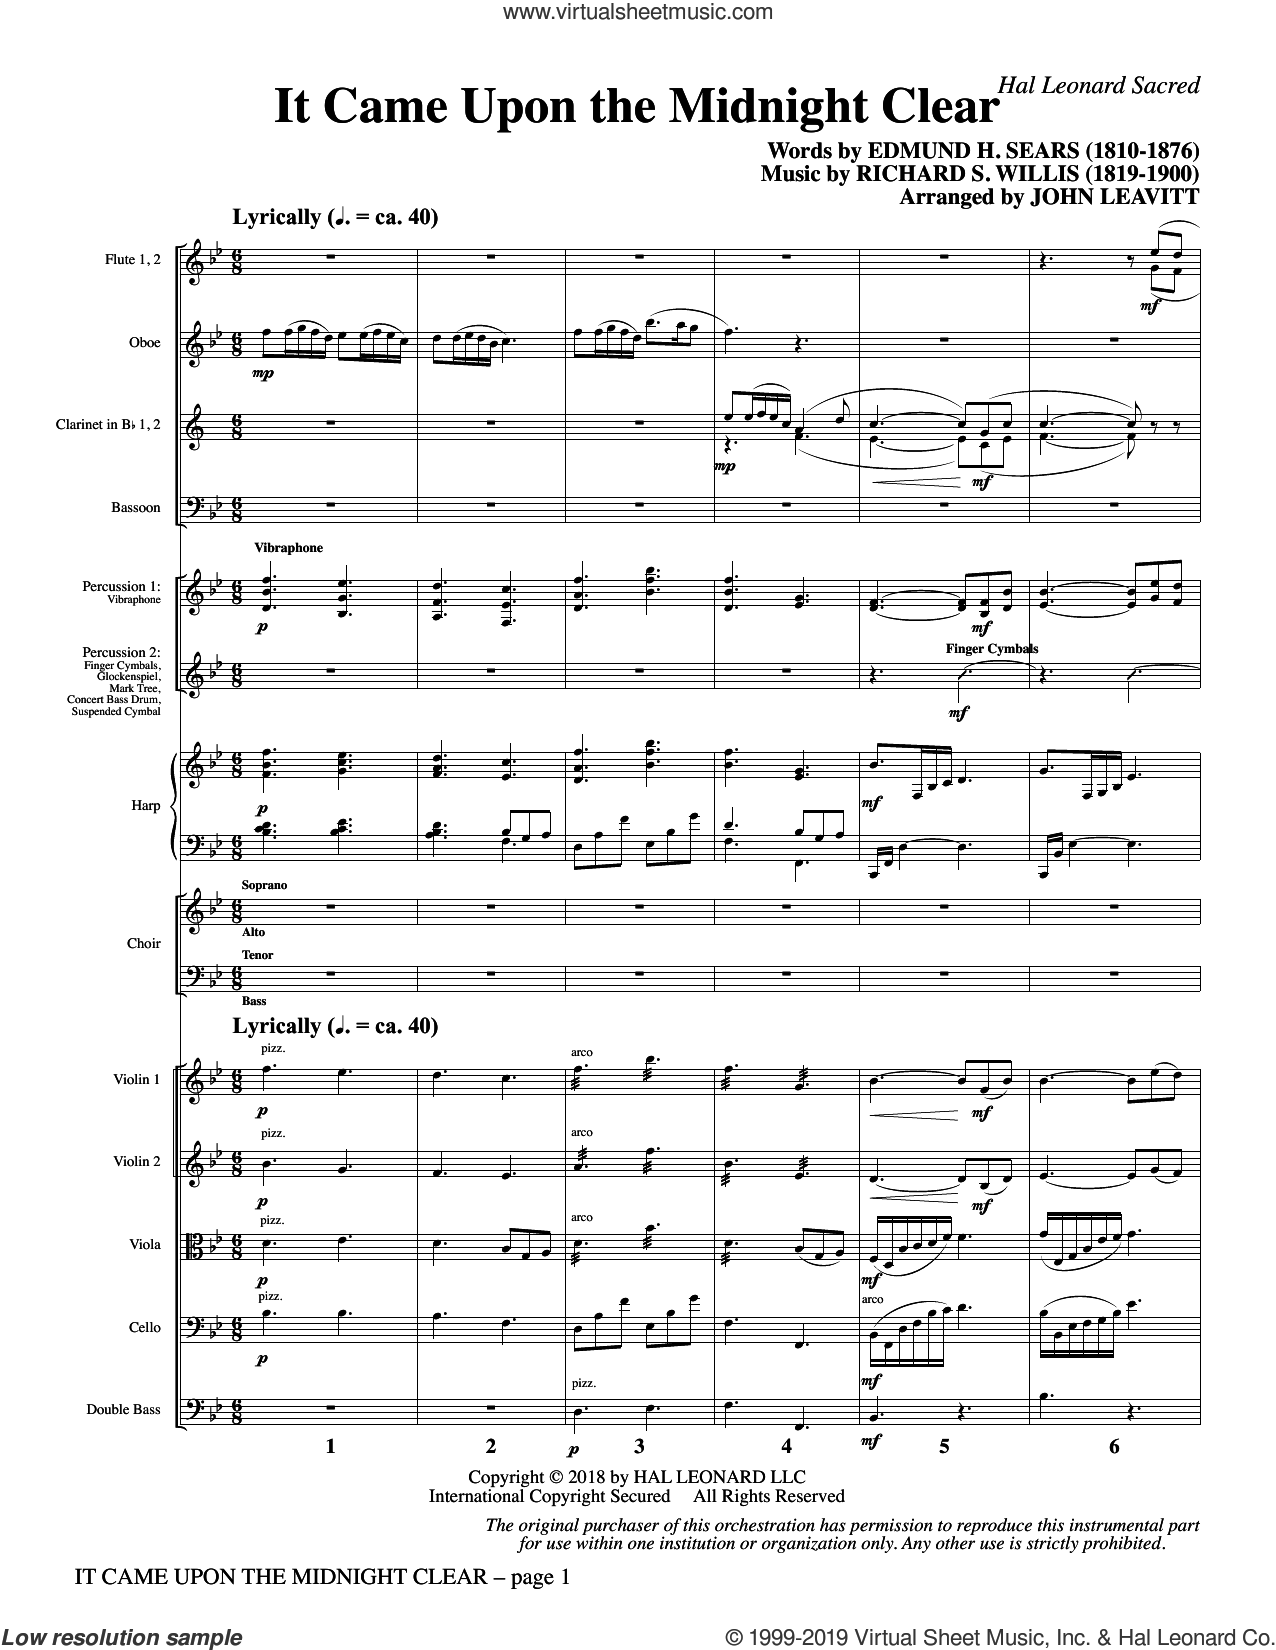 It Came Upon the Midnight Clear (COMPLETE) sheet music for orchestra/band by John Leavitt, Edmund Hamilton Sears and Richard Storrs Willis, intermediate skill level